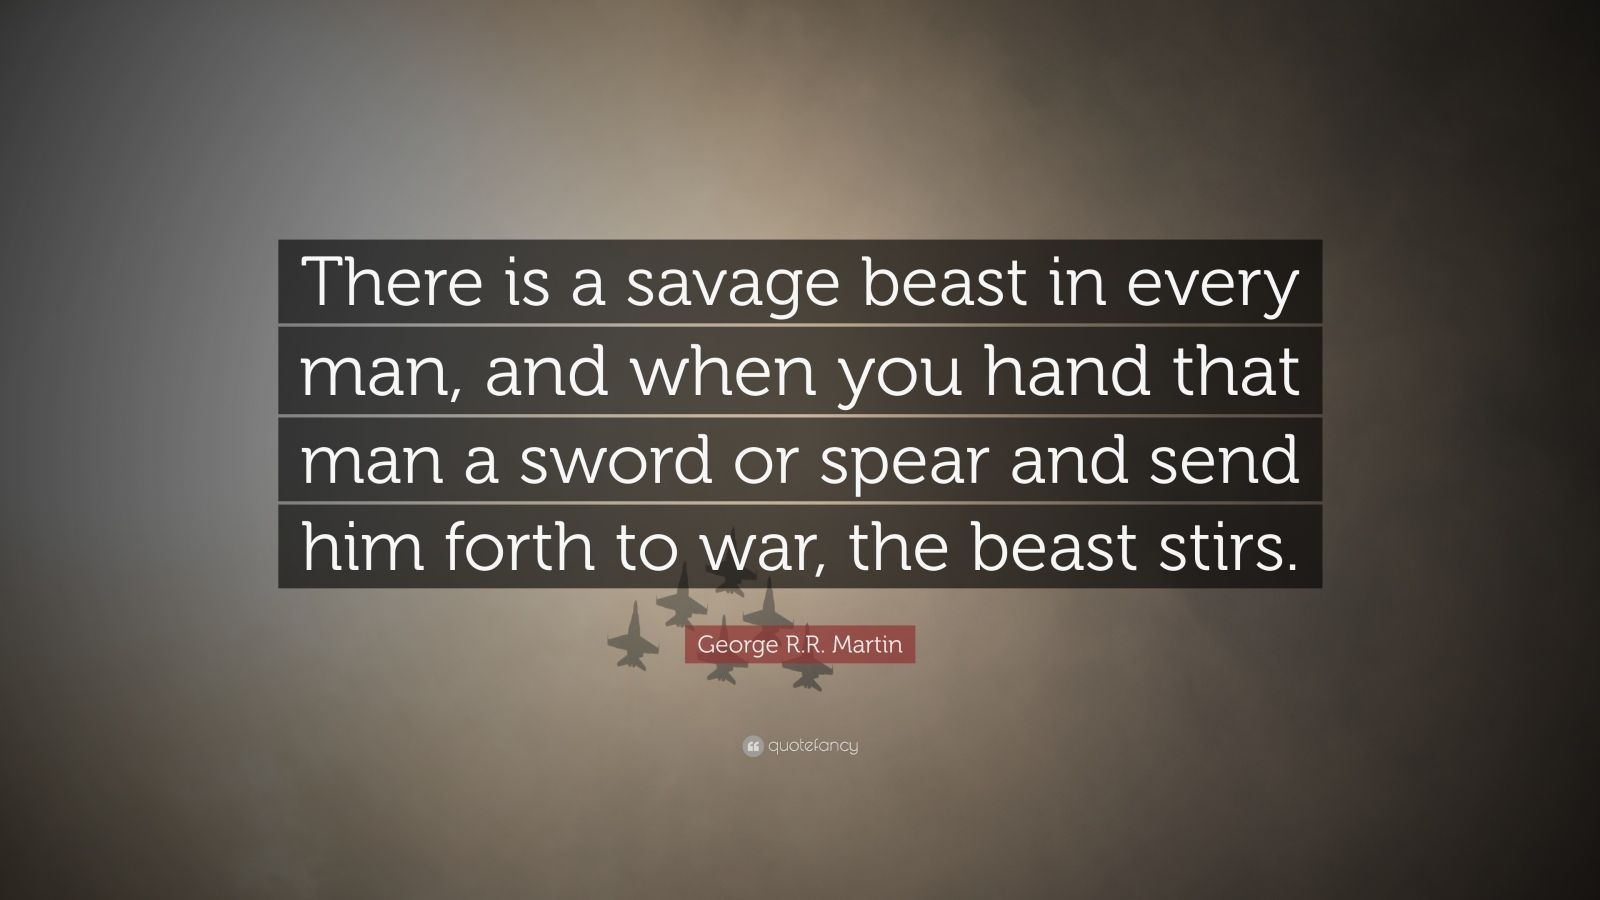 Roald Dahl Quotes Wallpaper George R R Martin Quote There Is A Savage Beast In